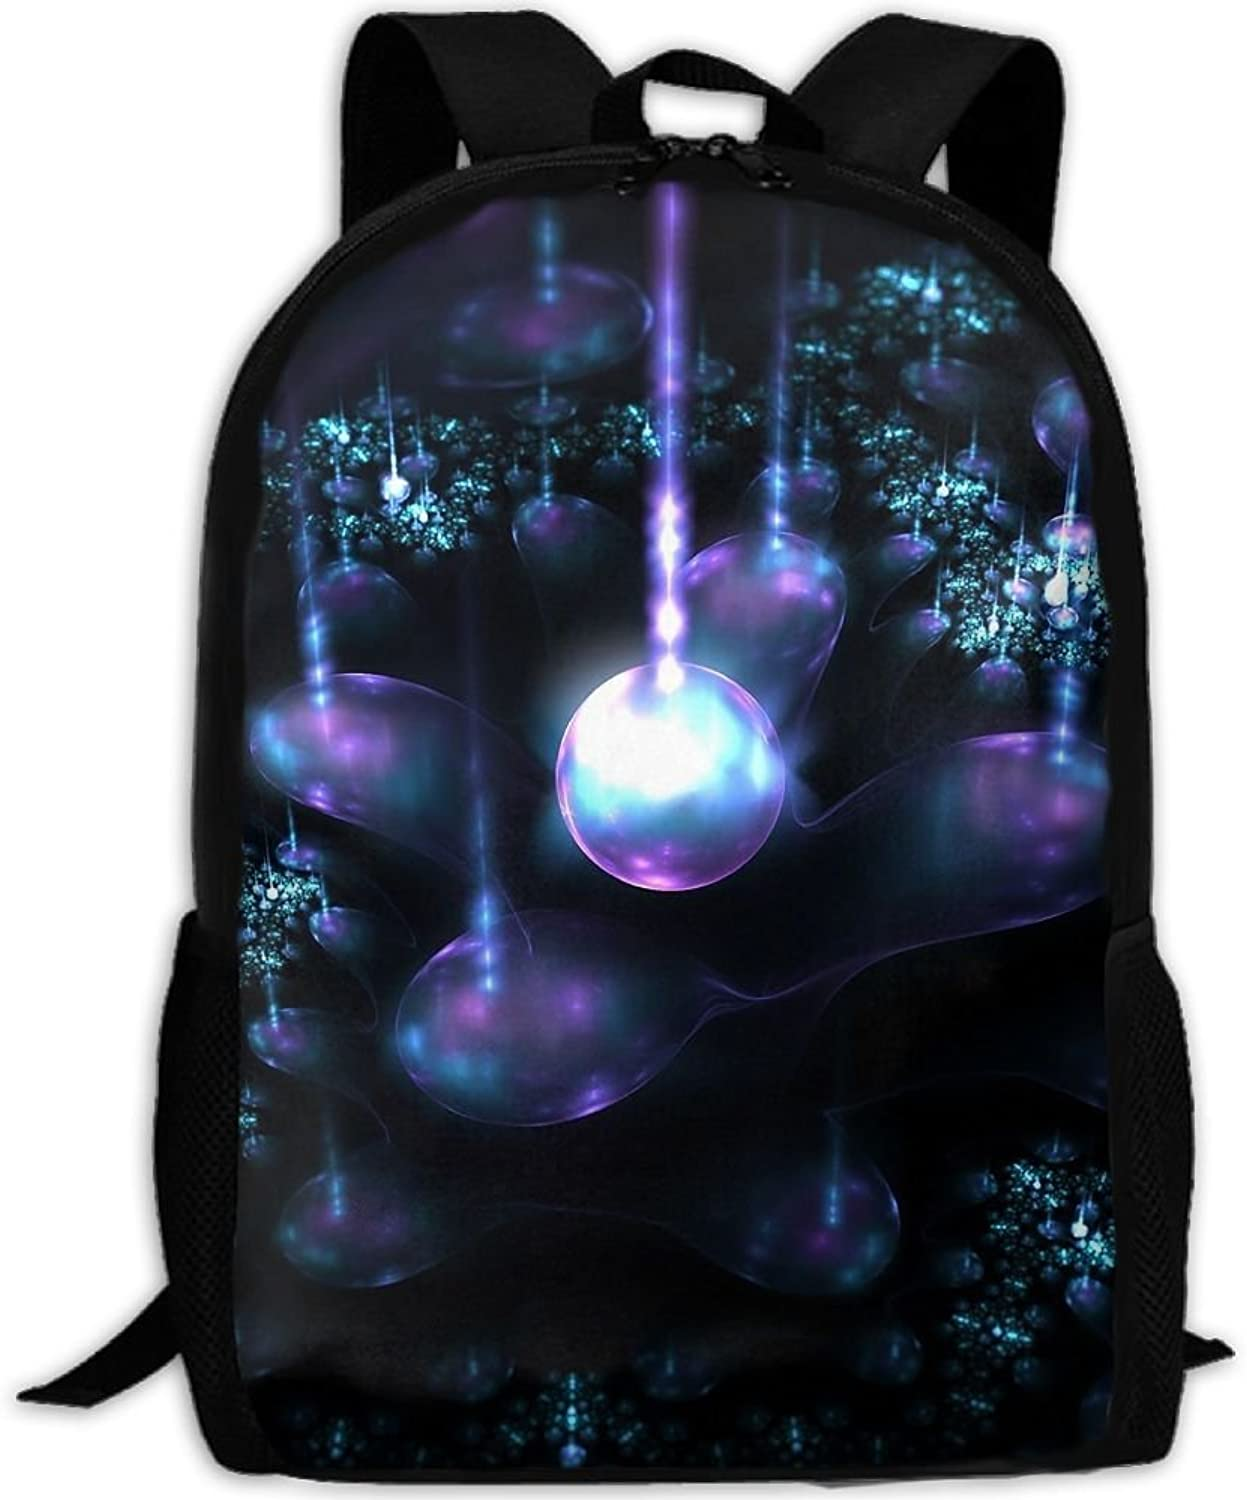 Adult Backpack Magic Line Light Shadow College Daypack Oxford Bag Unisex Business Travel Sports Bag with Adjustable Strap